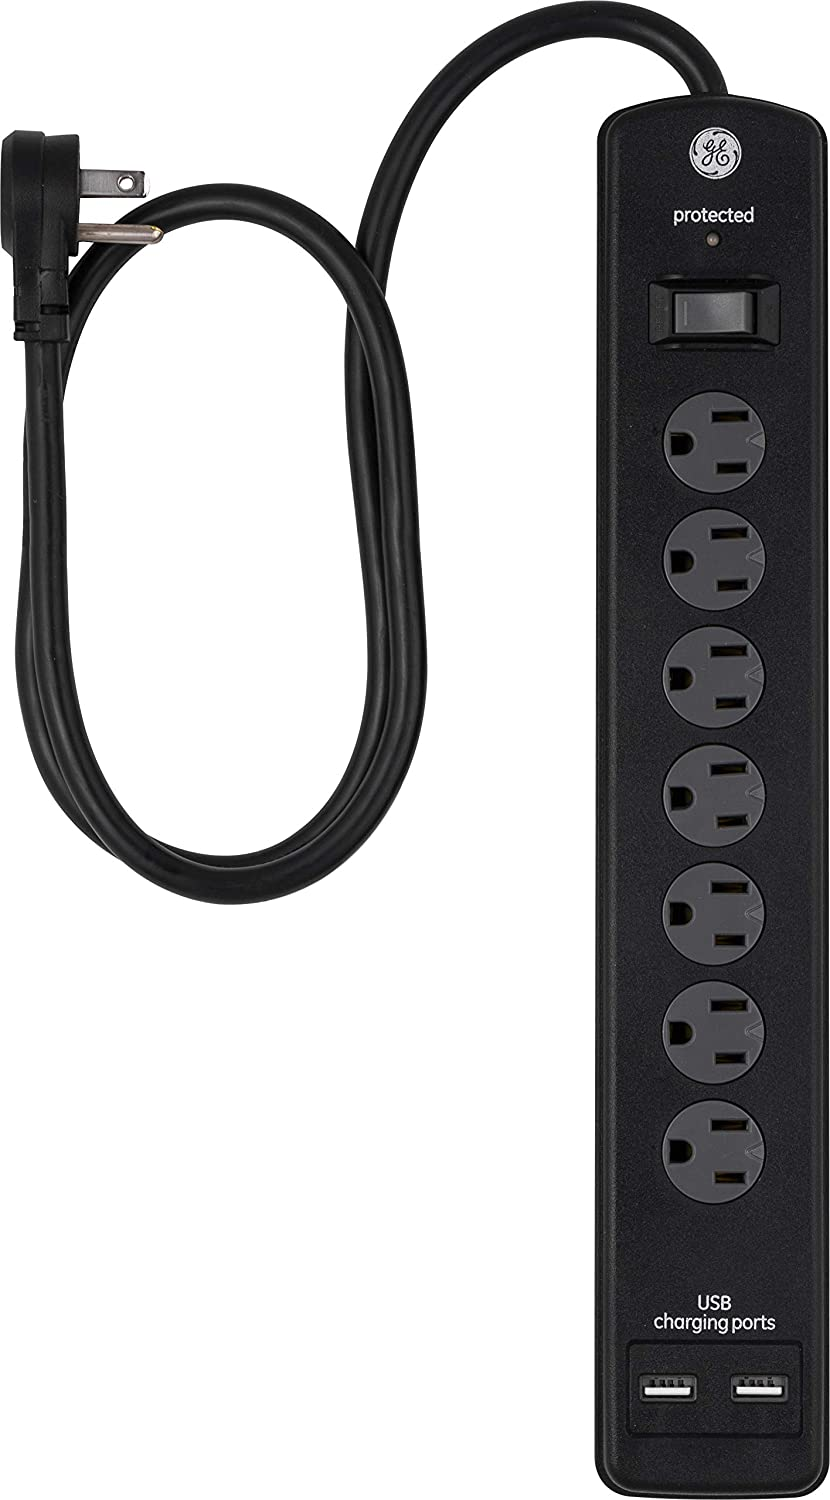 GE 7 Strip Surge Protector with 2 Port USB Charger, 3 Ft Power Cord, Twist to Close Safety Outlets,1300 Joules, 2.1A/10W, UL Listed, Black, 33664